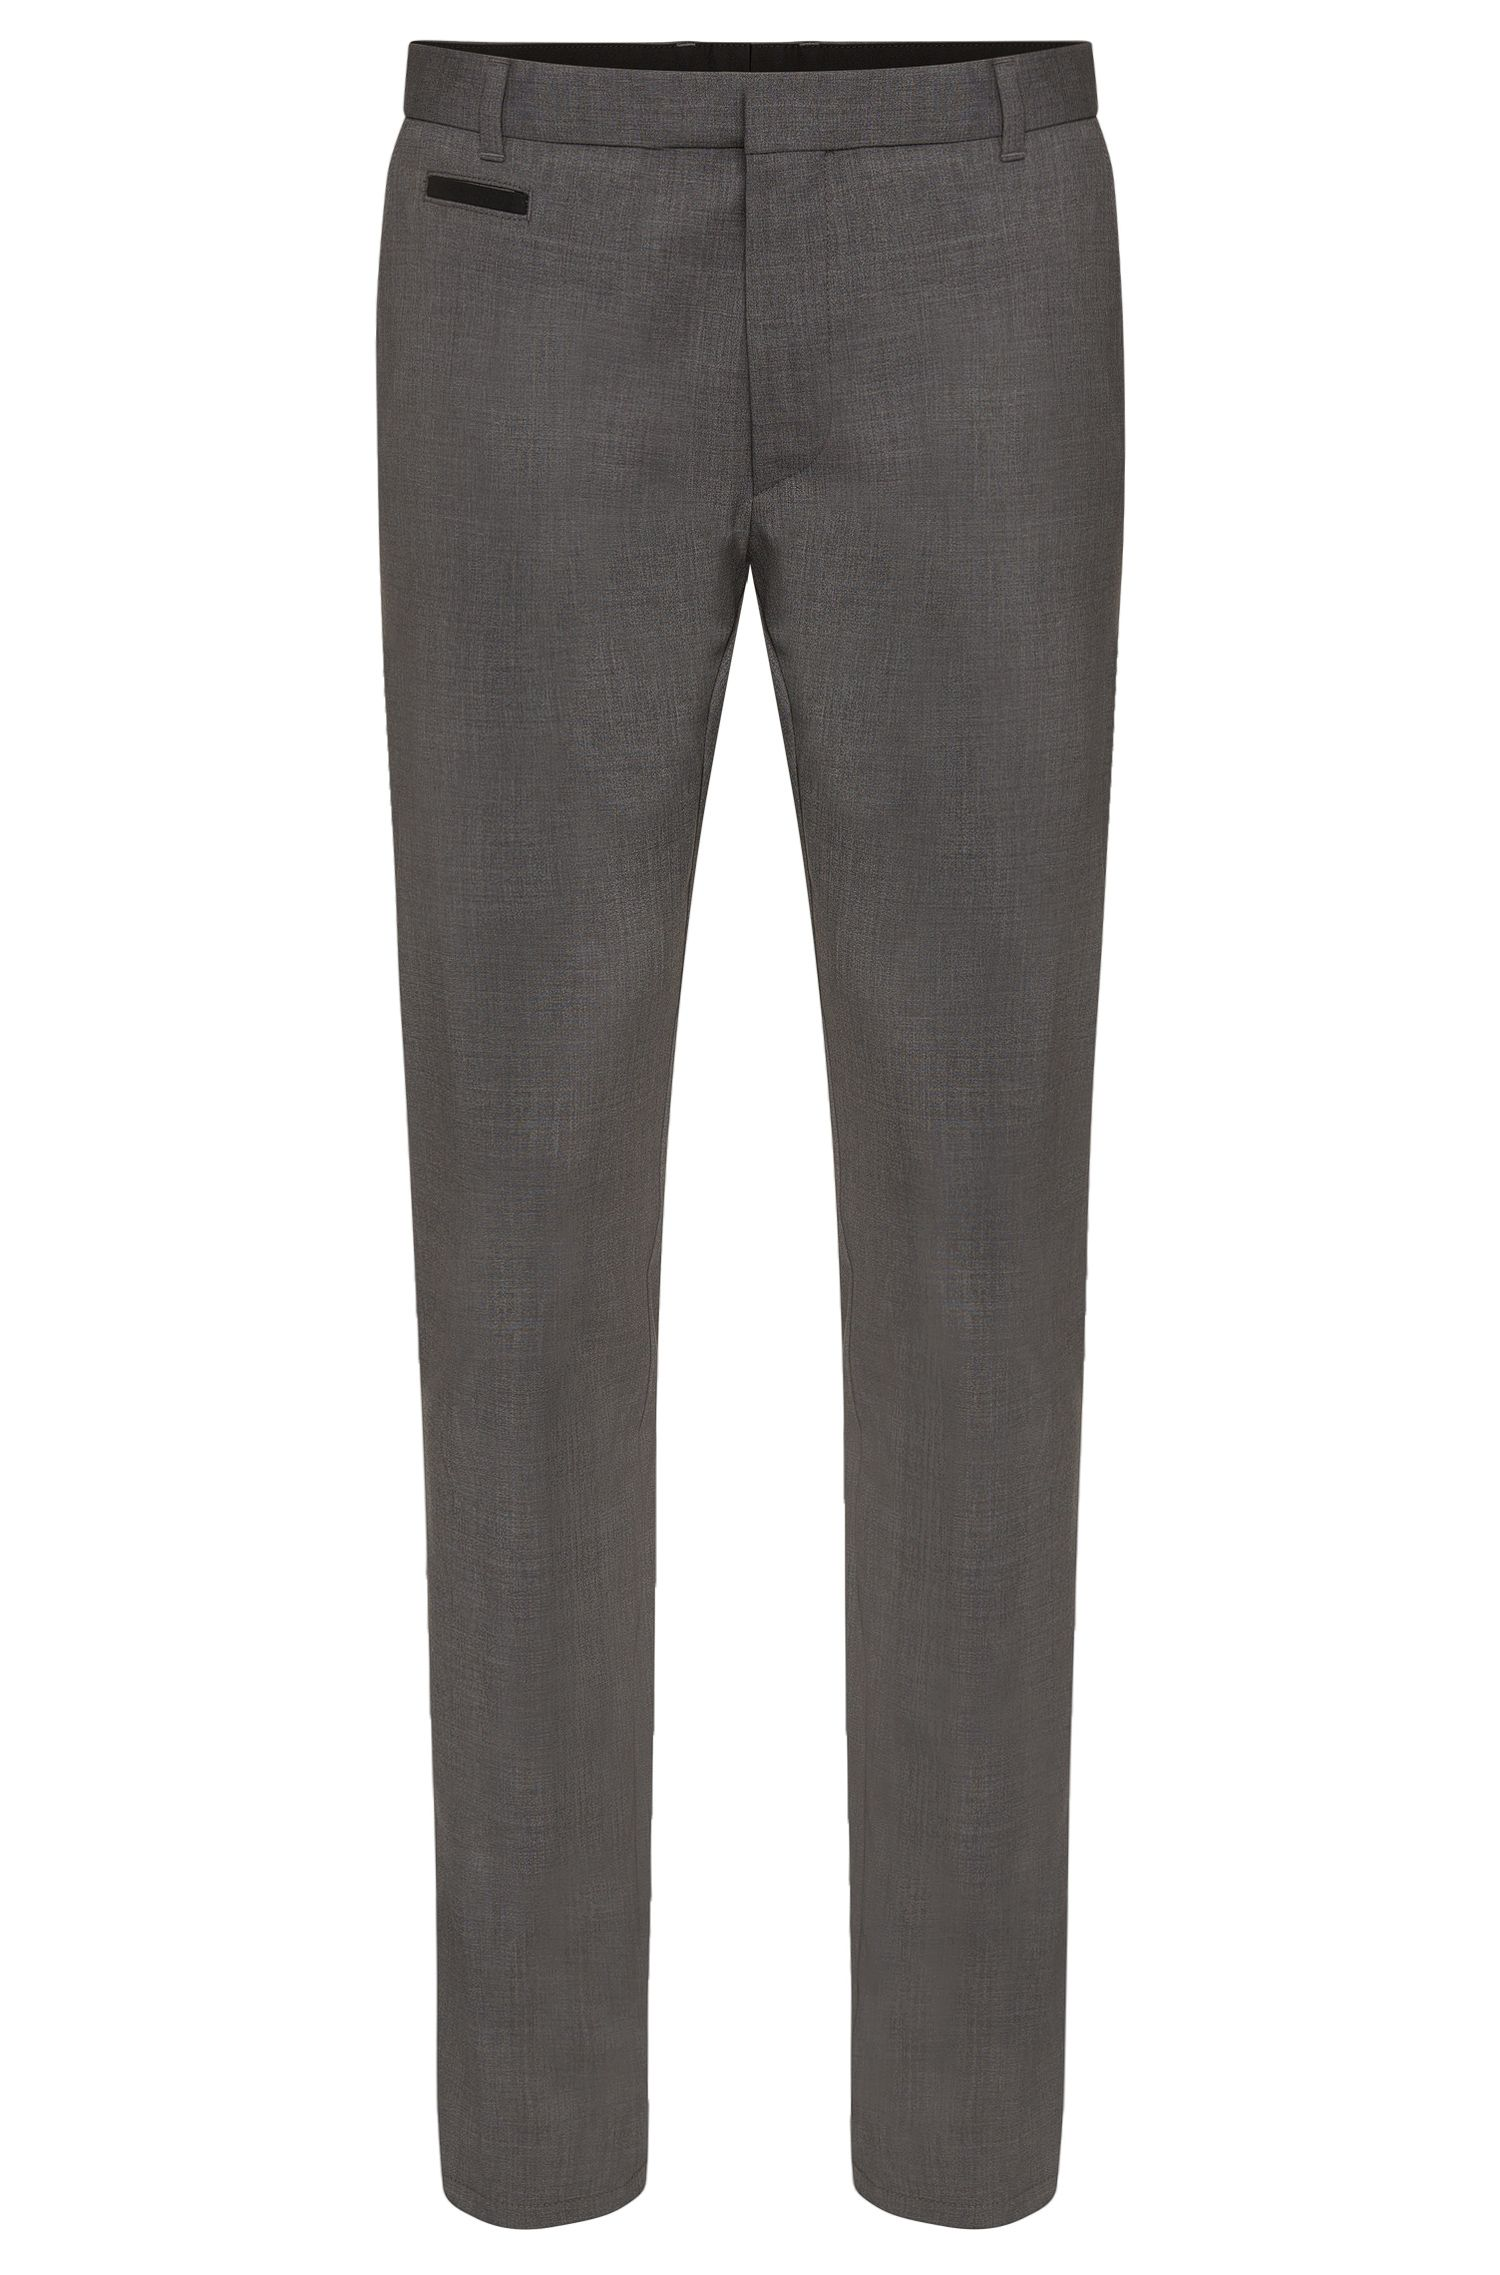 Pantalon Slim Fit en laine vierge stretch : « Heralt »